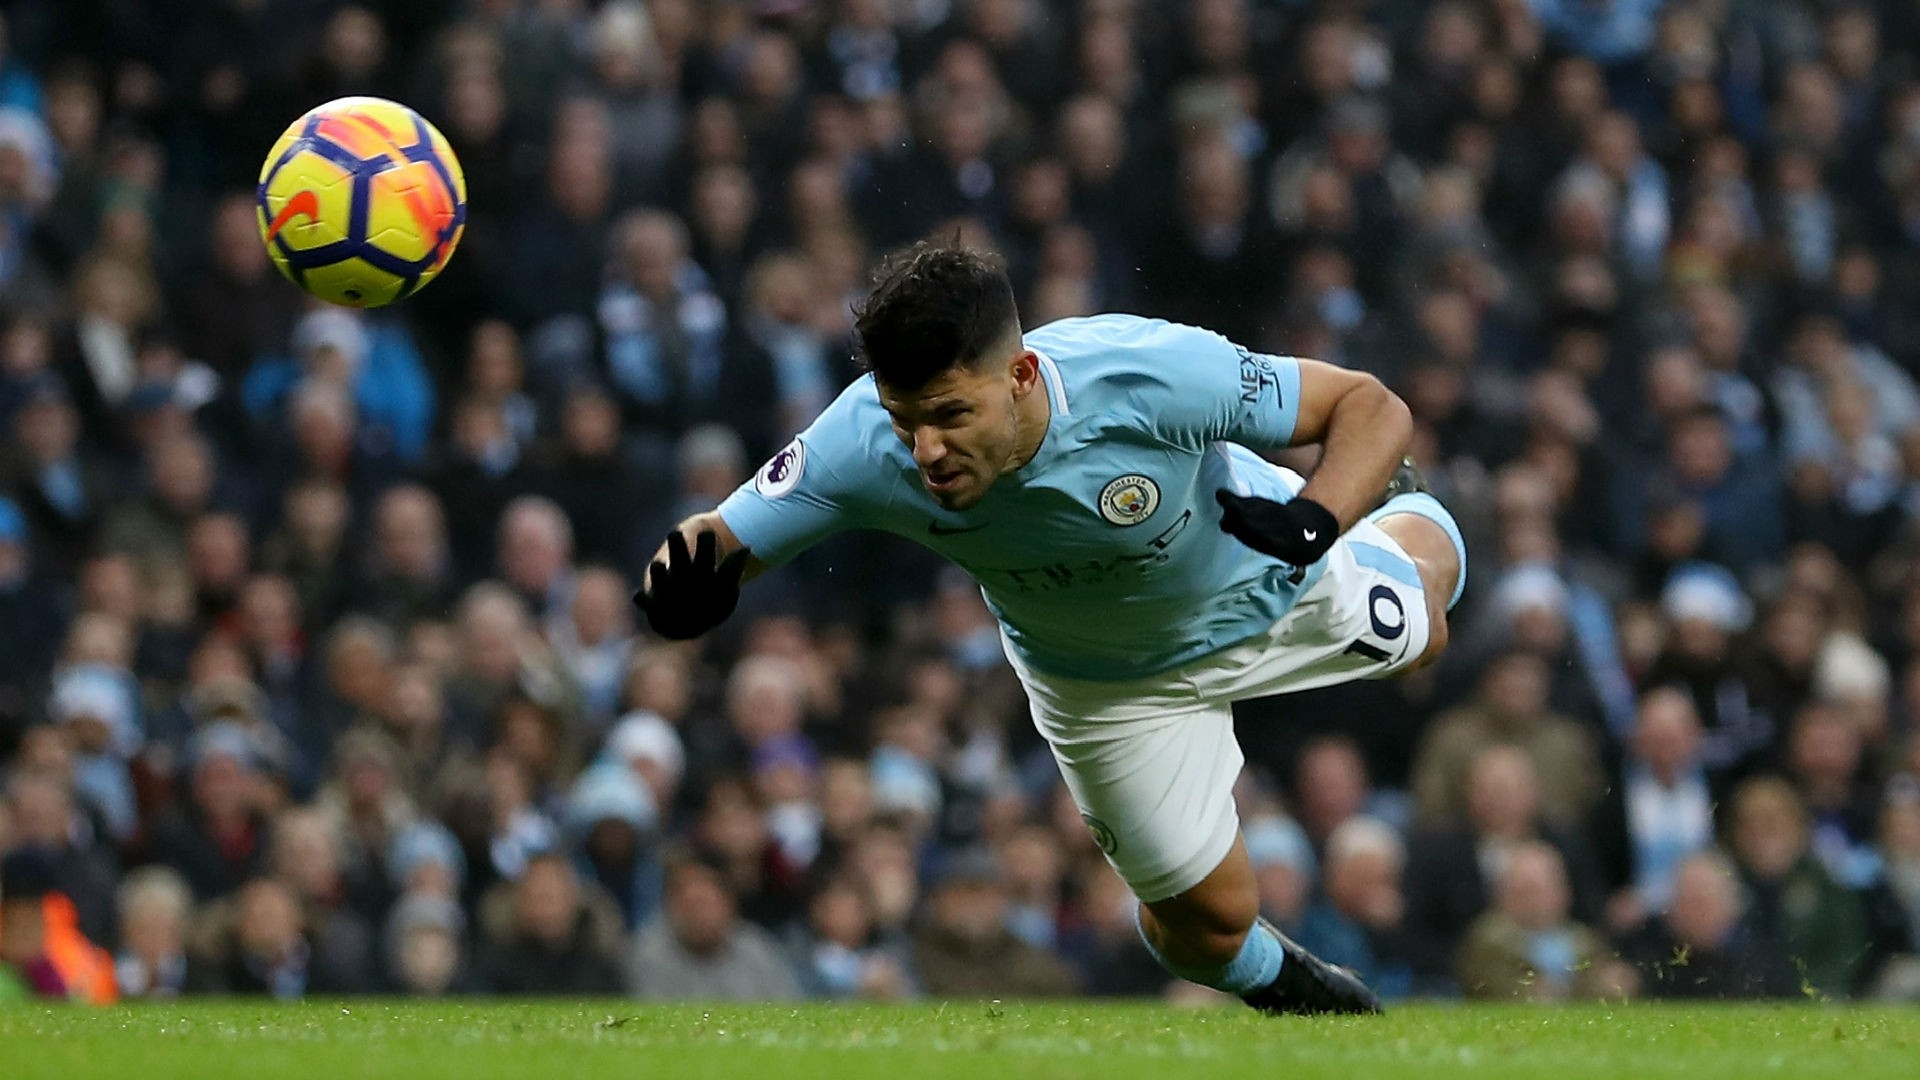 Download Manchester City 4-0 Bournemouth Video Highlights